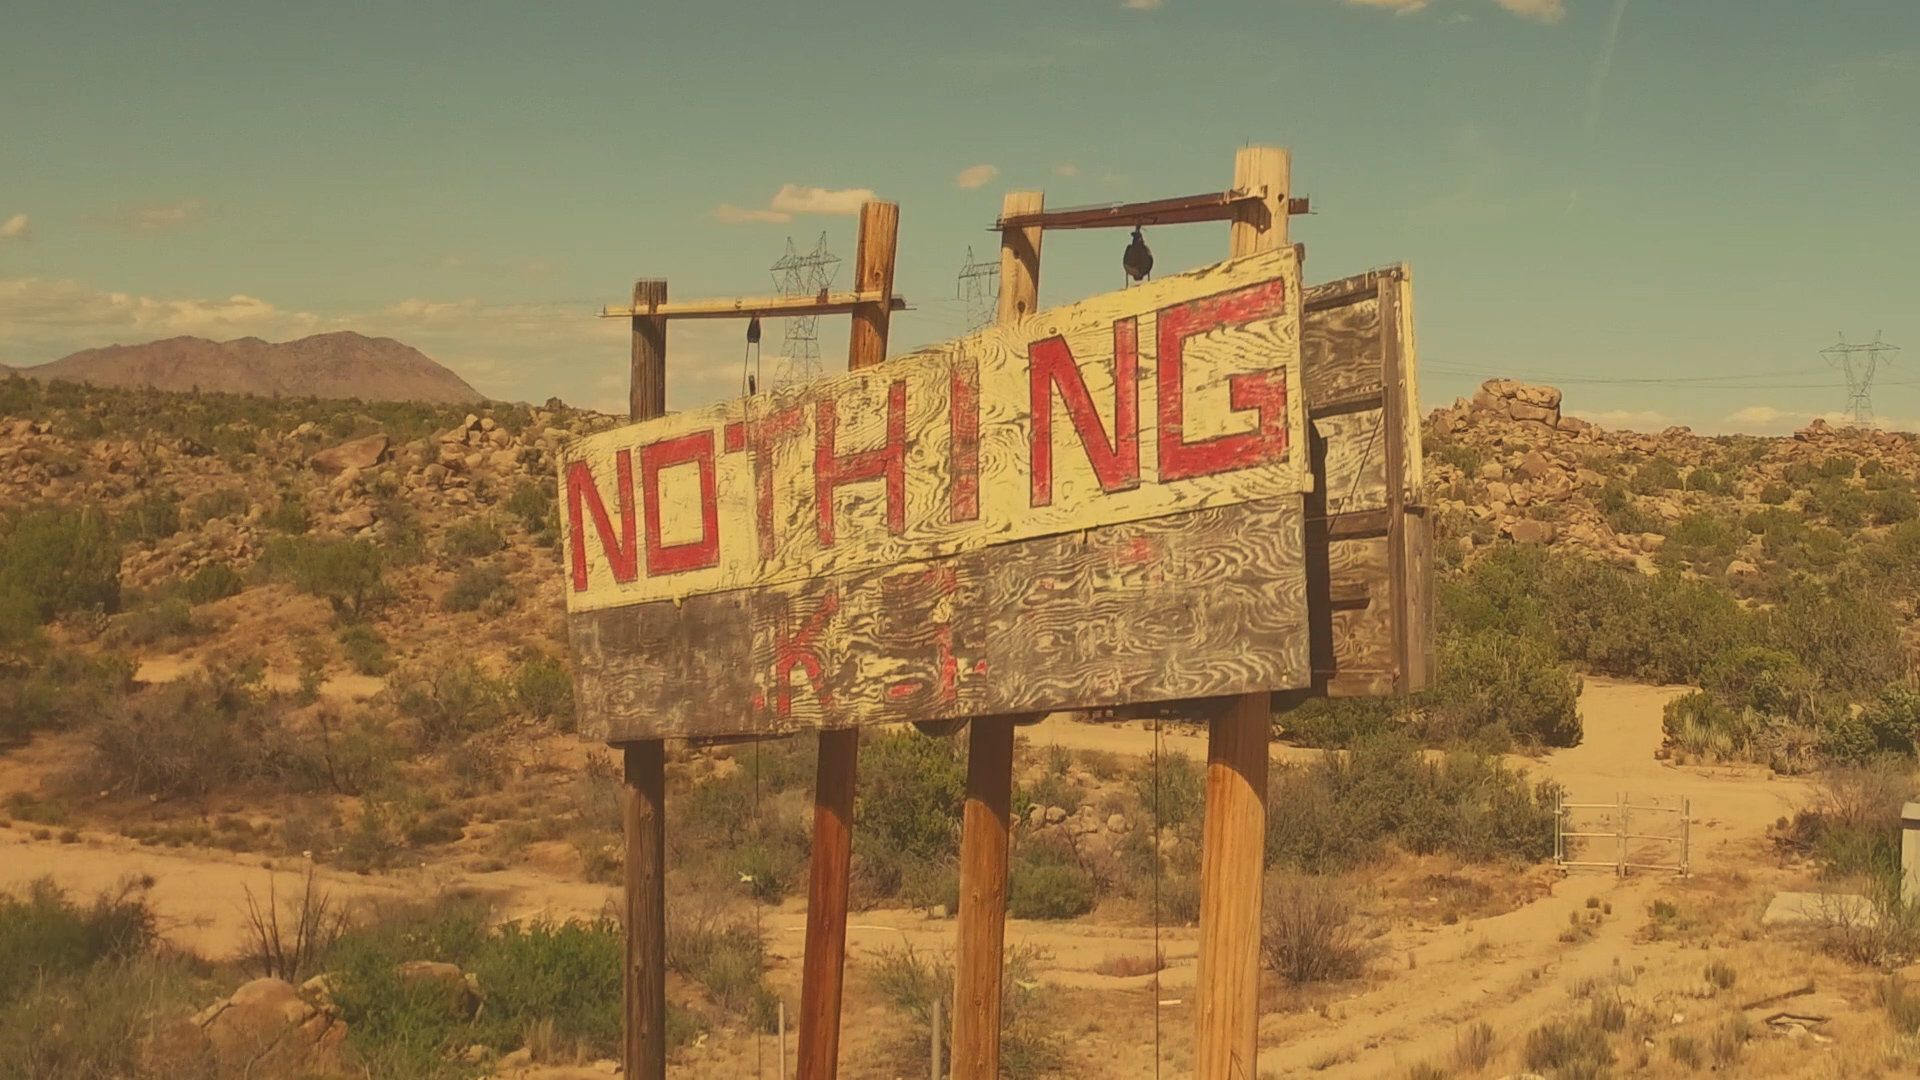 A sign in Nothing, Arizona advertises what you are likely to find in that town.